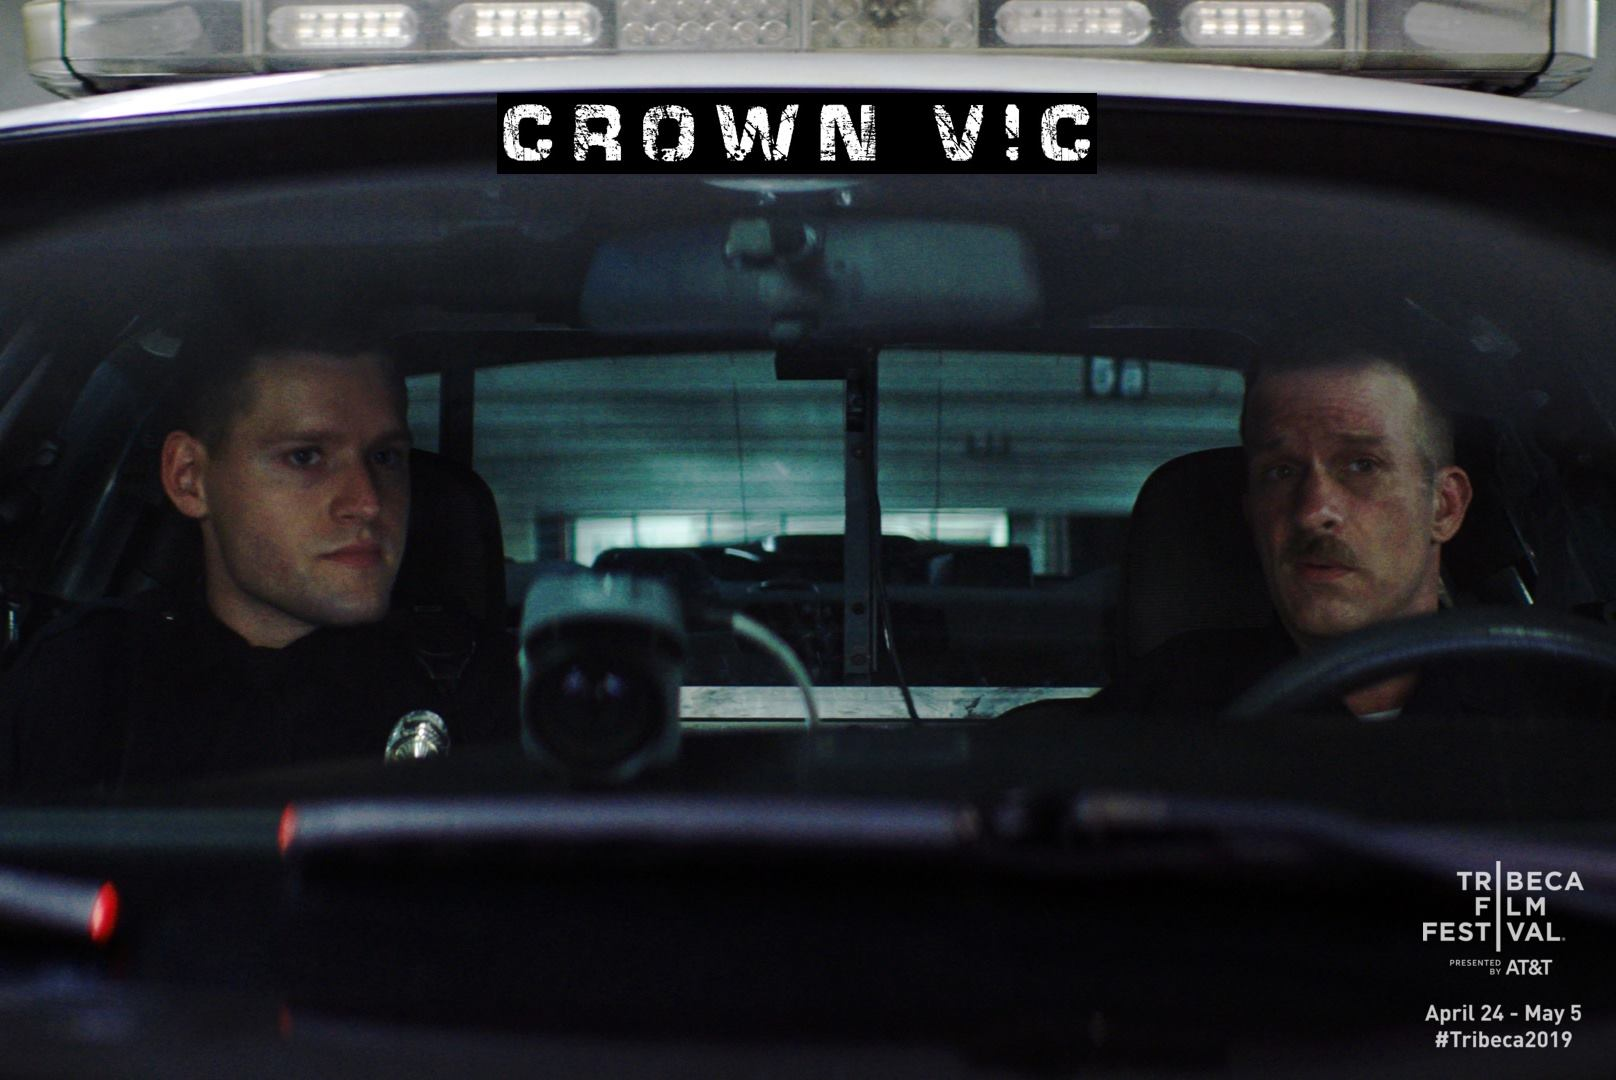 CROWN VIC: Shot in Buffalo. Debuts at Tribeca